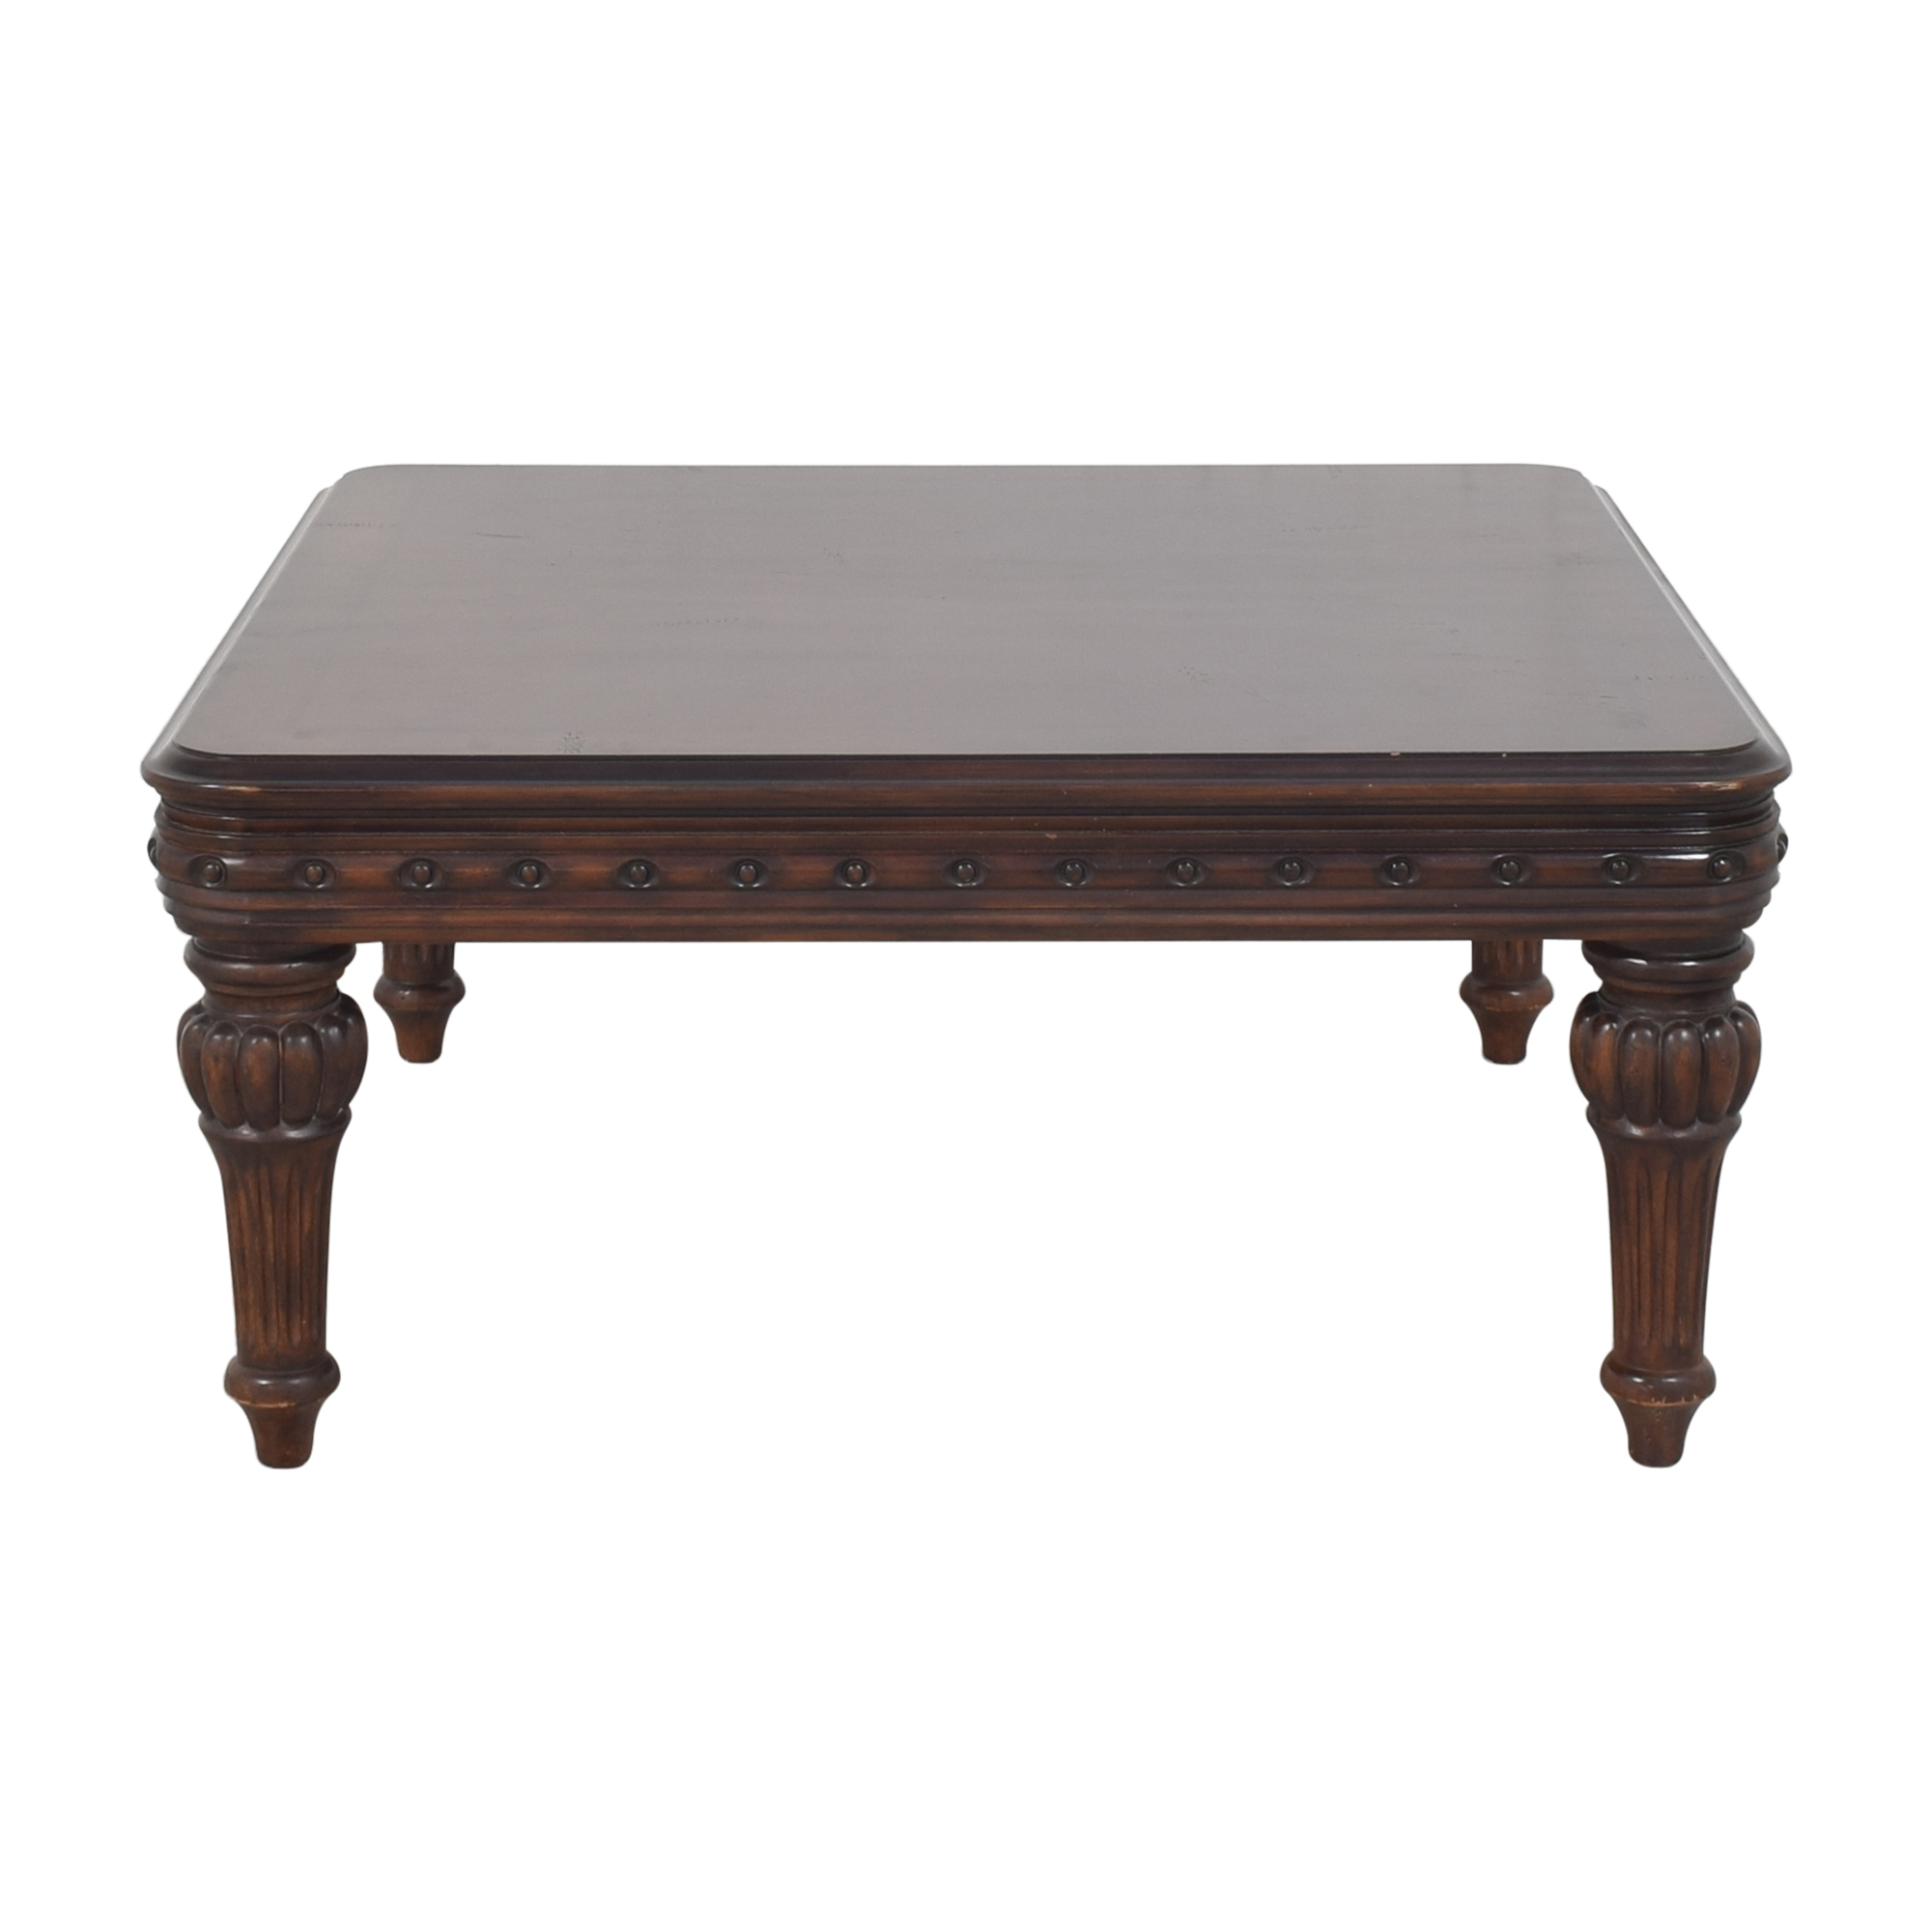 Bernhardt Bernhardt Square Coffee Table Tables